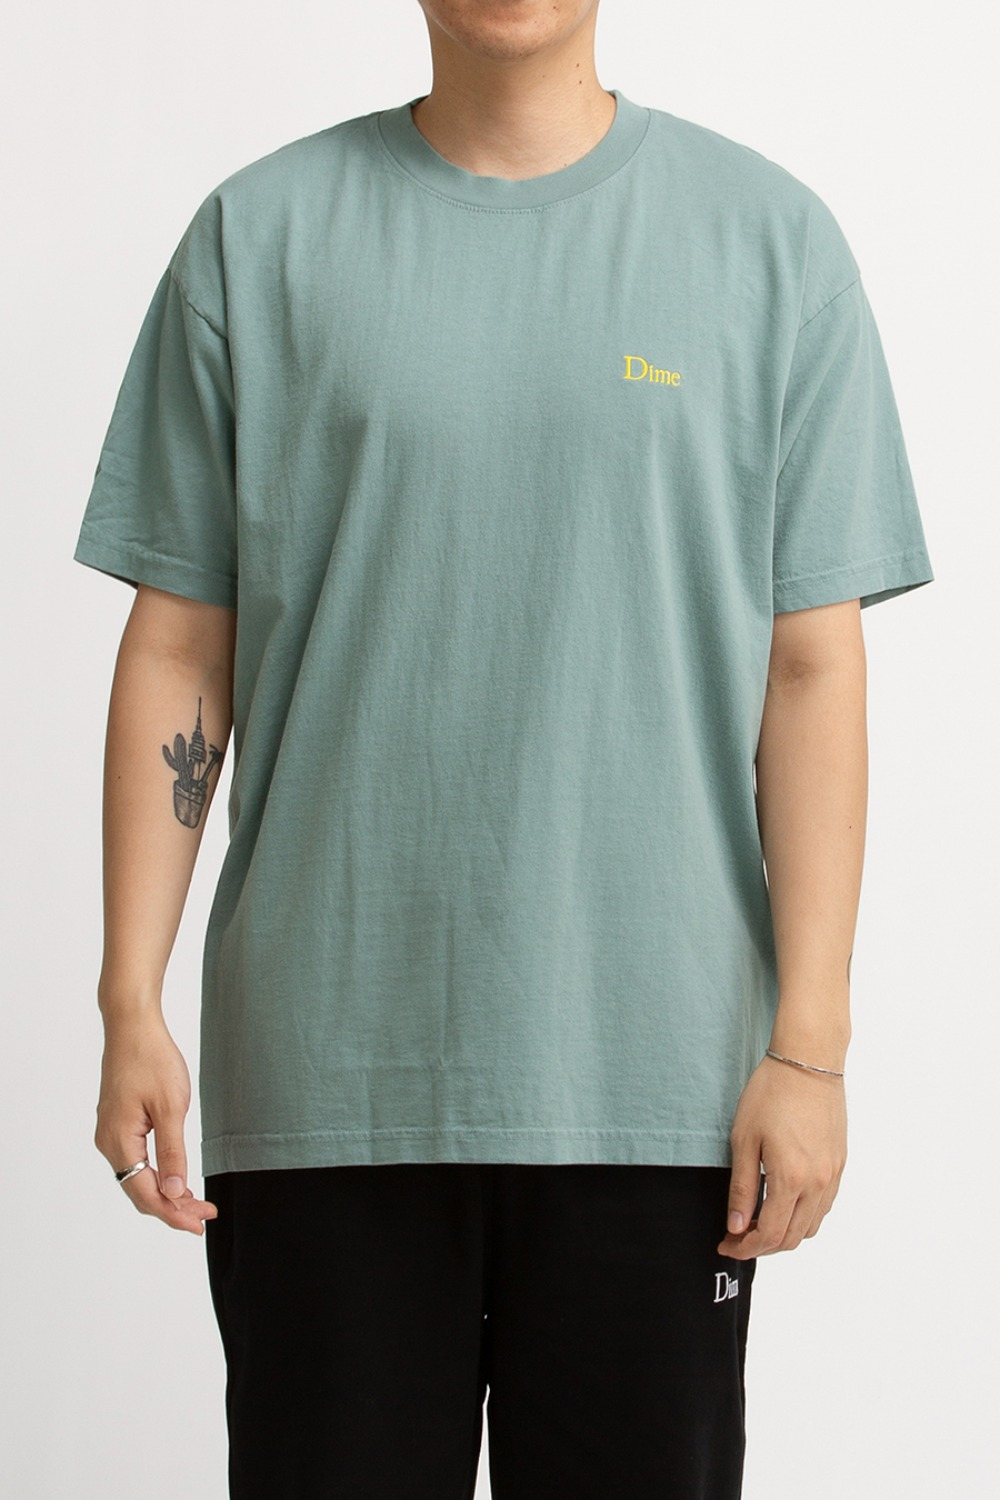 DIME CLASSIC LOGO EMBROIDERED T-SHIRT GREEN